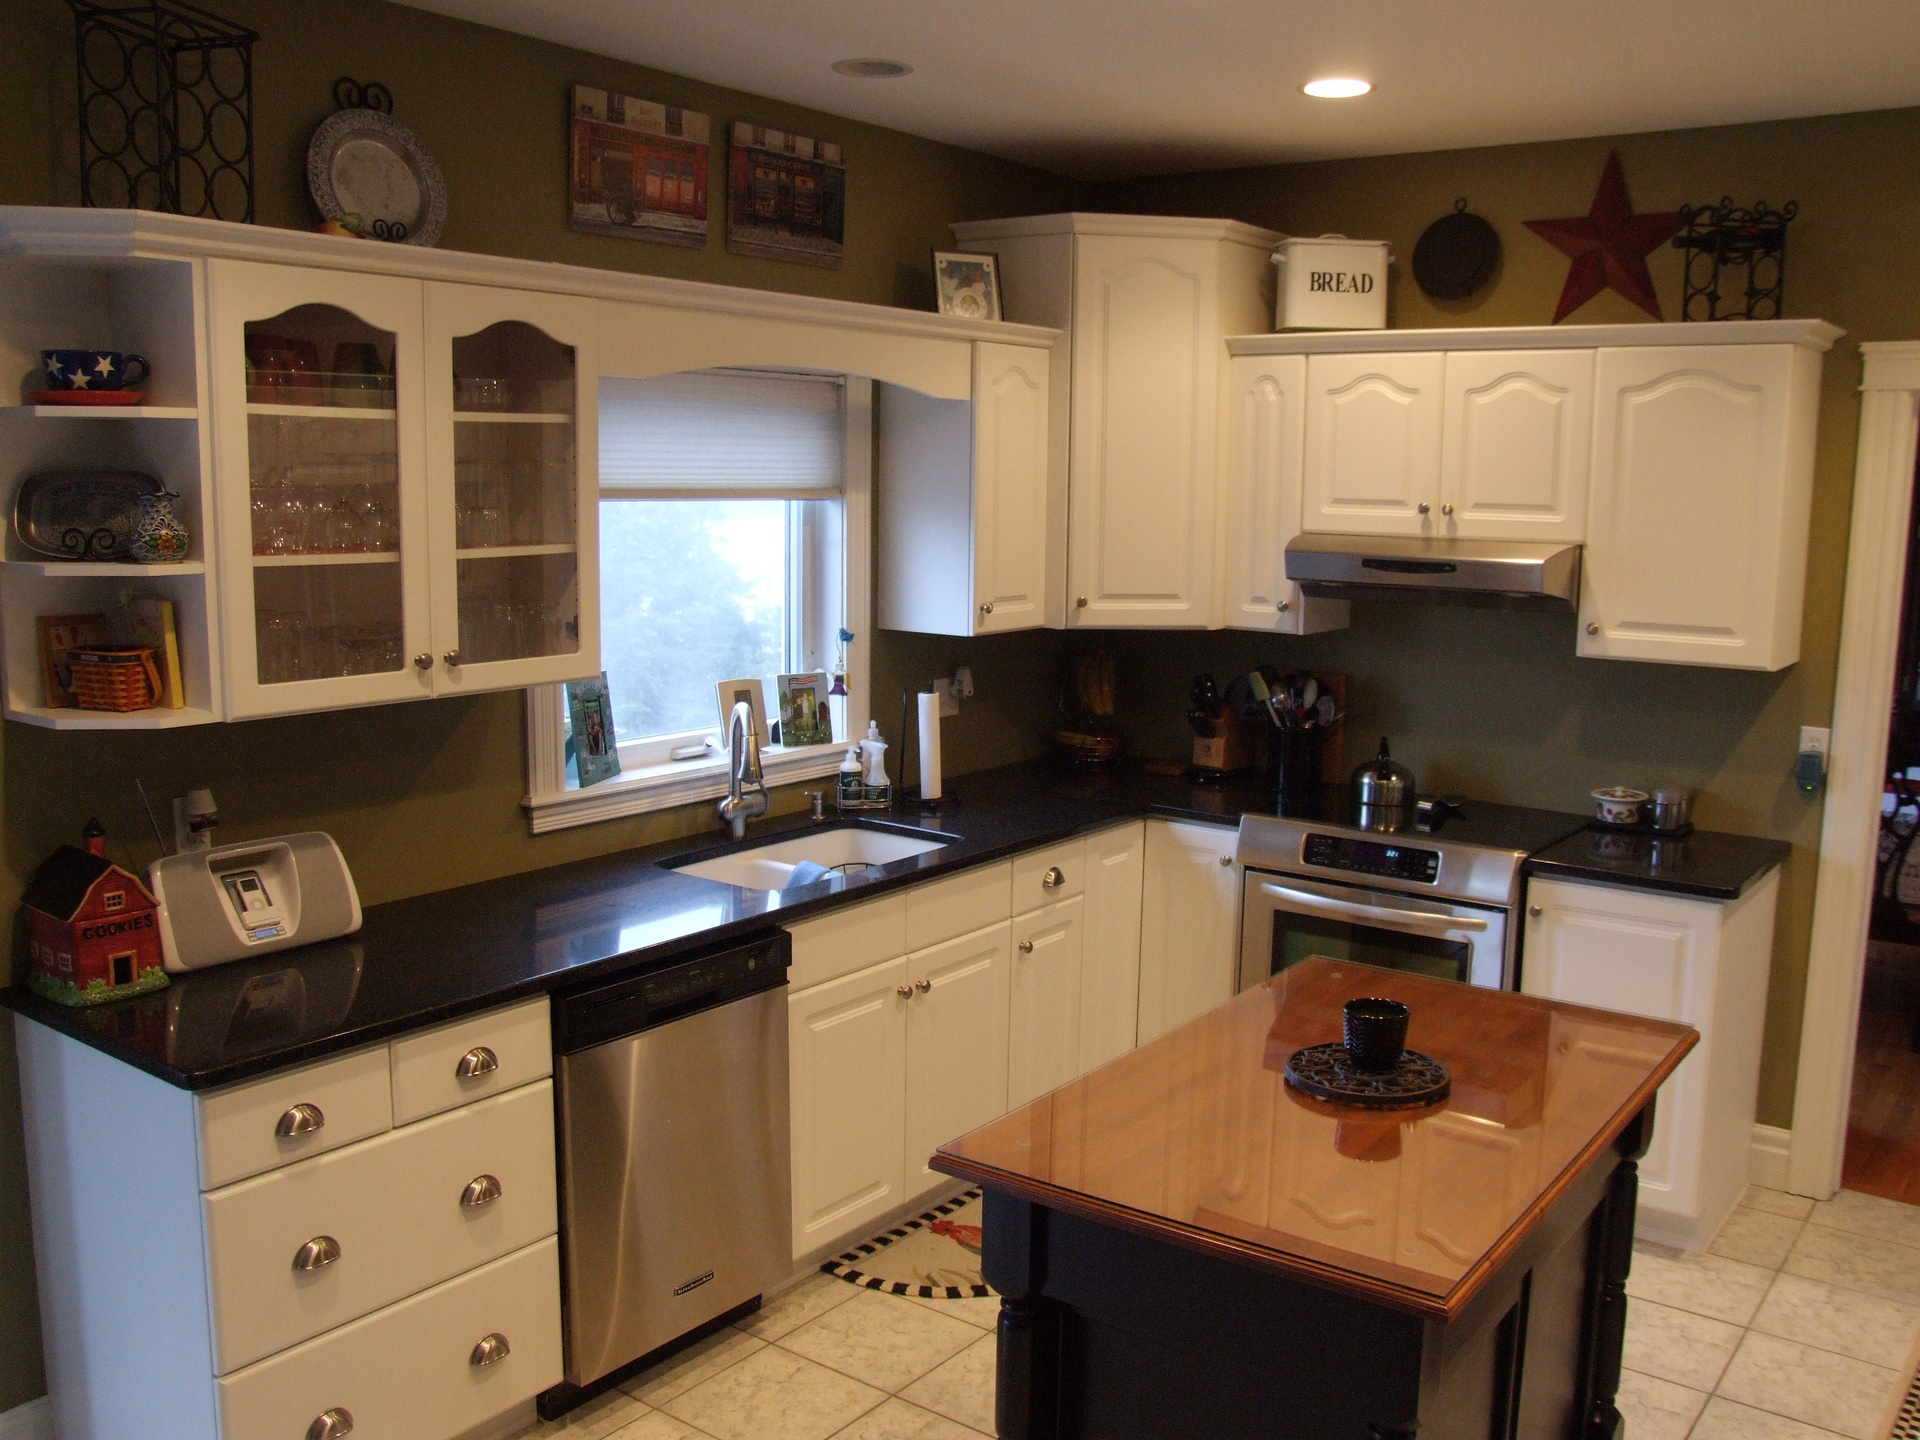 Kitchen Cabinet Refacing fers More Flexibilty And Options